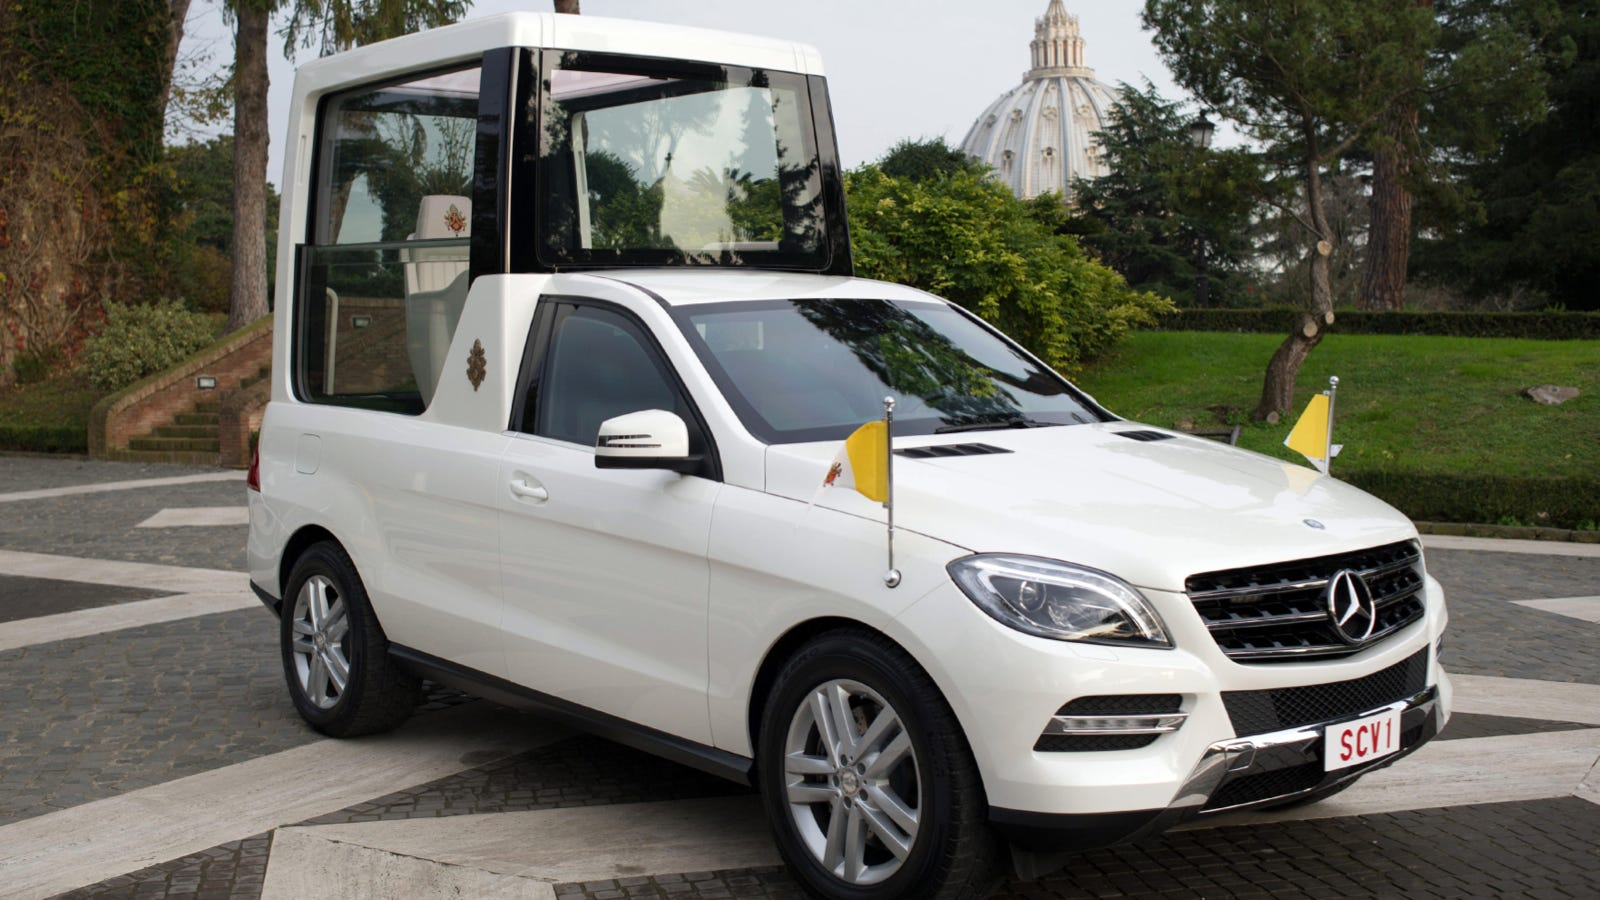 Surprise Pope Benedict S New Popemobile Is A Mercedes